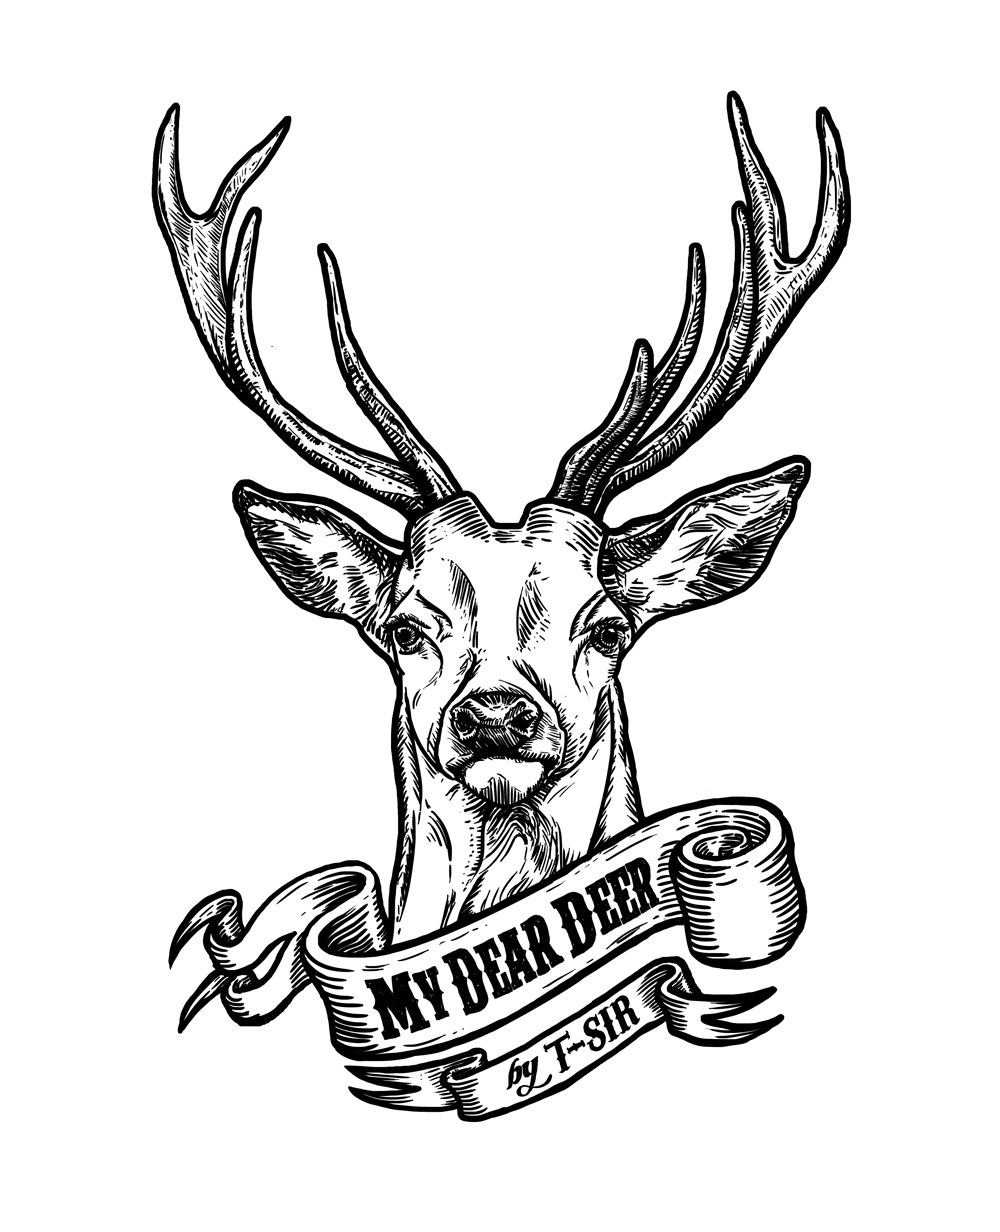 My Dear Deer design | Oscar Postigo